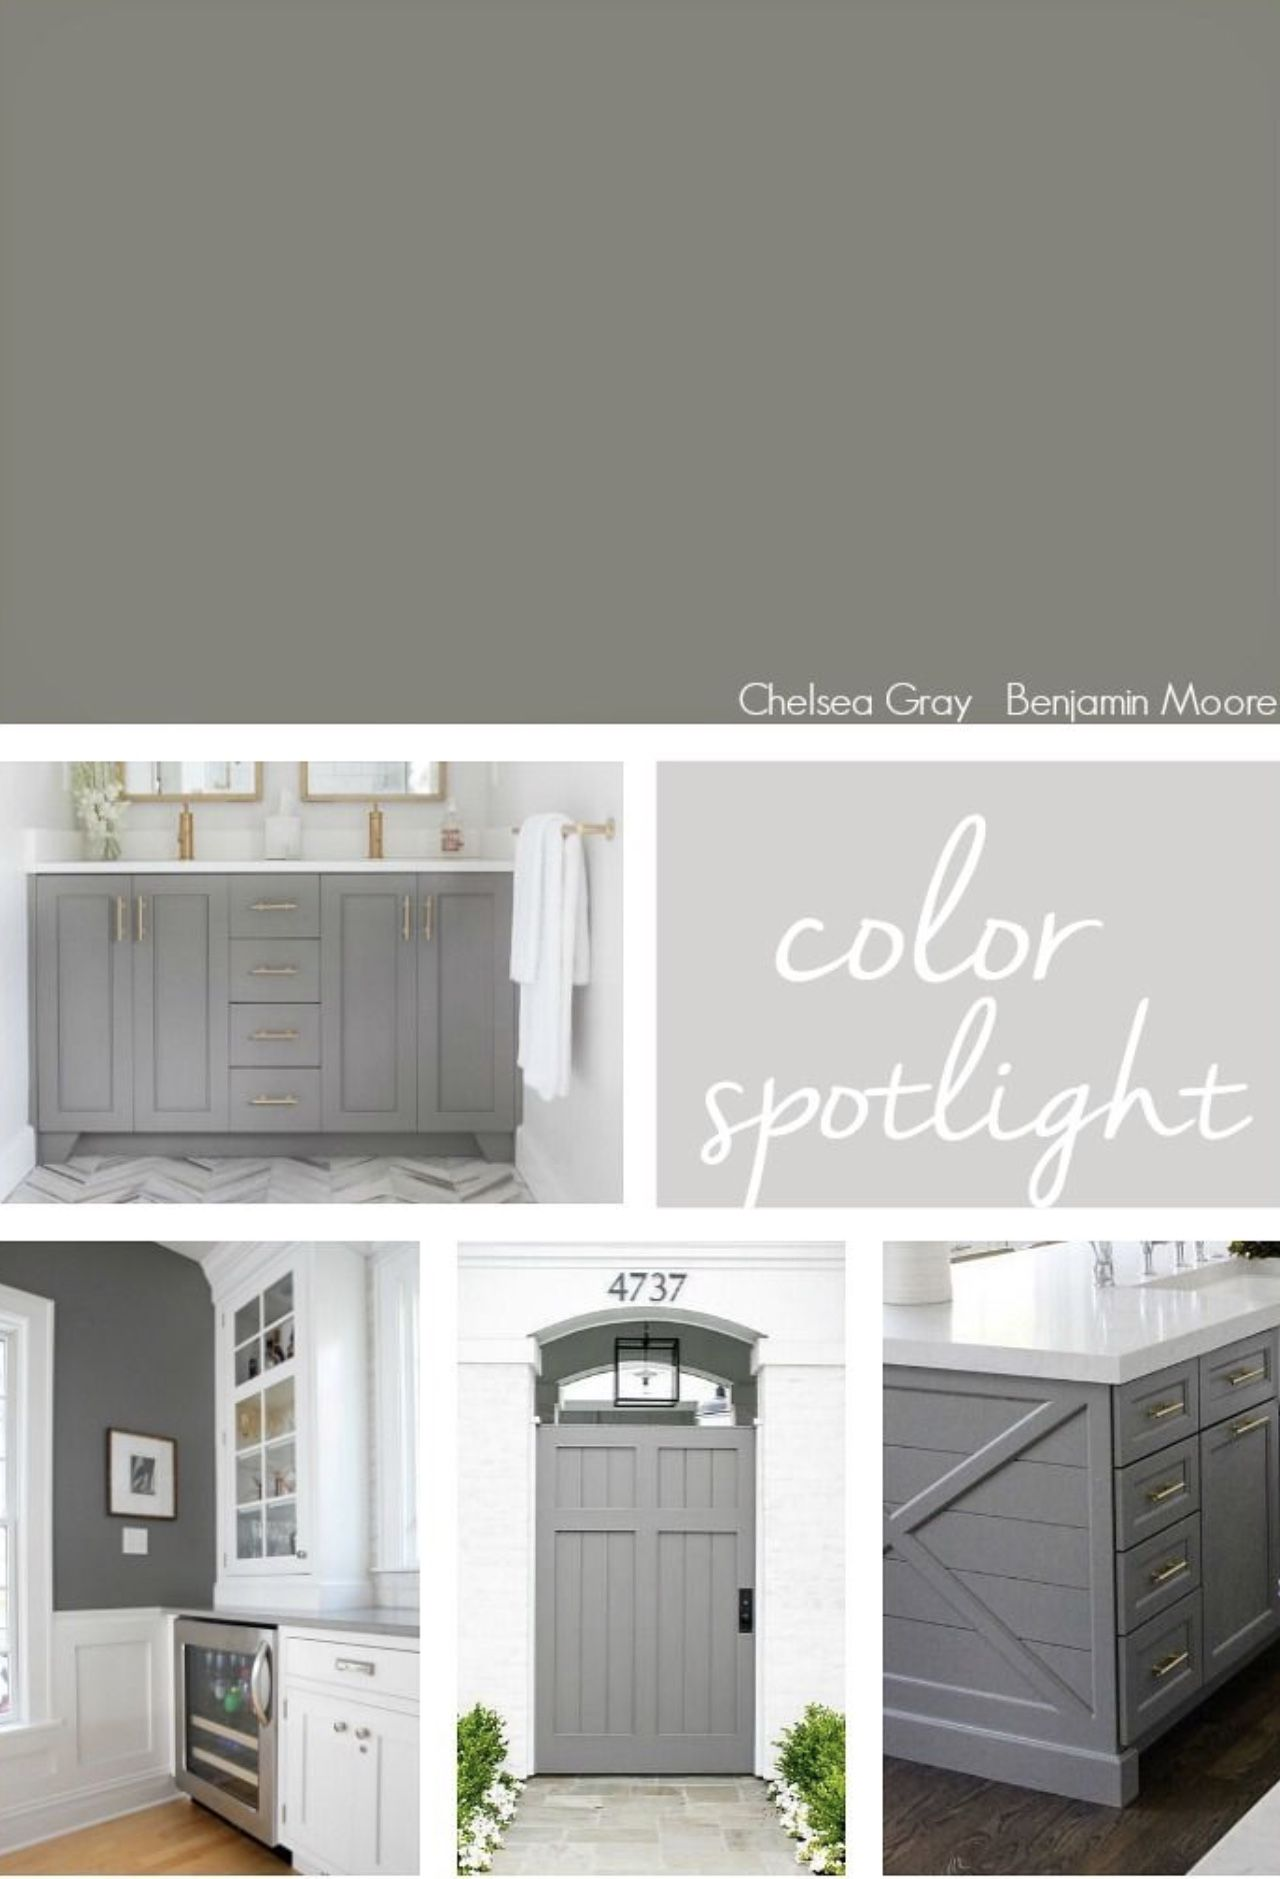 Chelsea Gray Trends Benmoore Paint Farmhouse Diy Interior Seacoast Local Exeter Epping Chelsea Gray Benjamin Moore Chelsea Gray Grey Kitchen Island